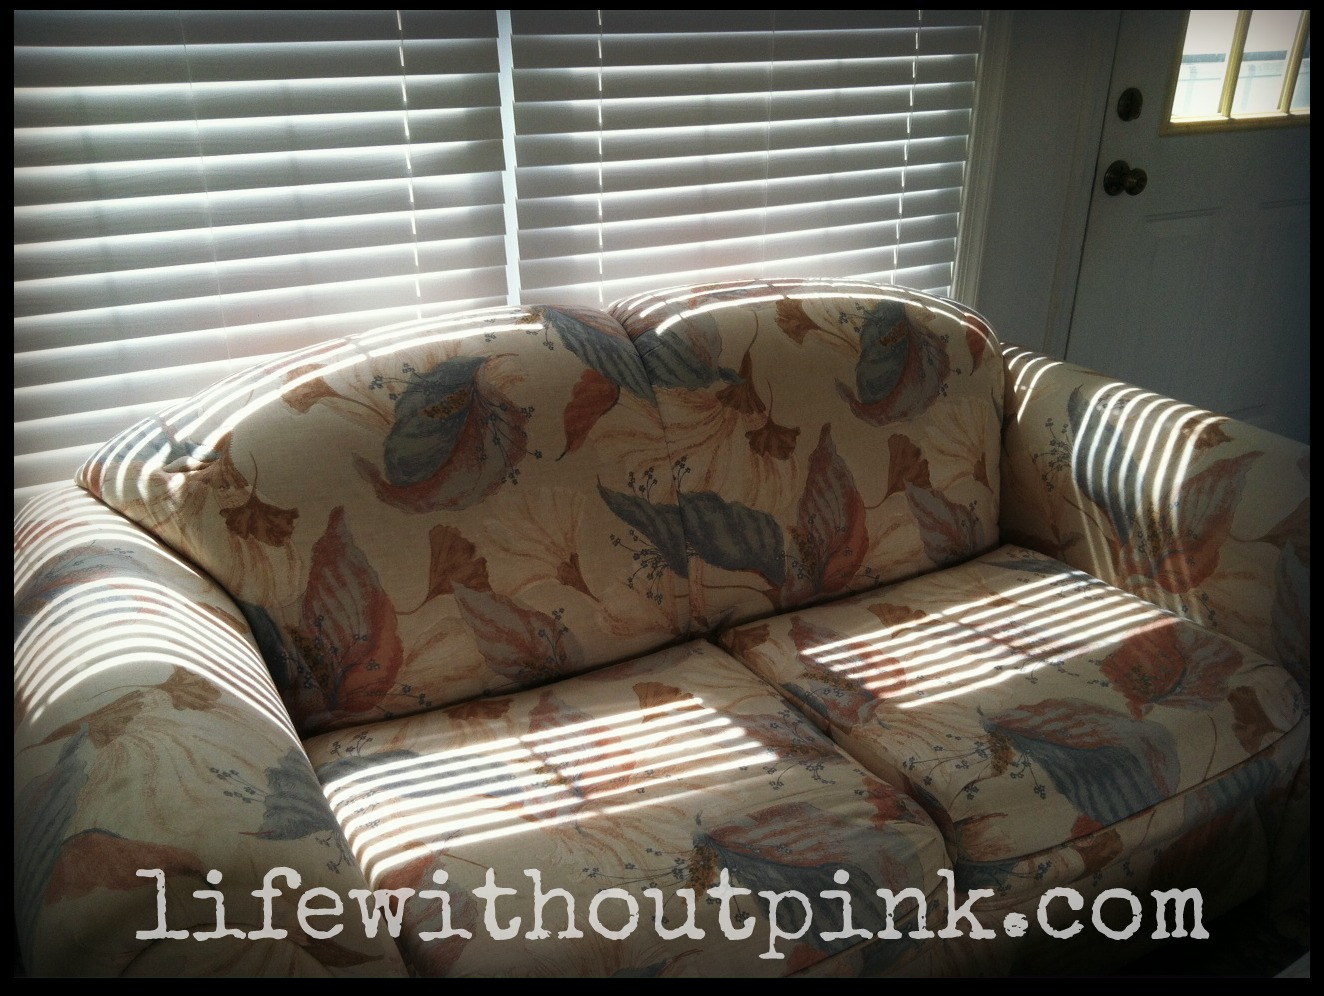 wonderful sofa with surefit cover in floral pattern for living room decor ideas